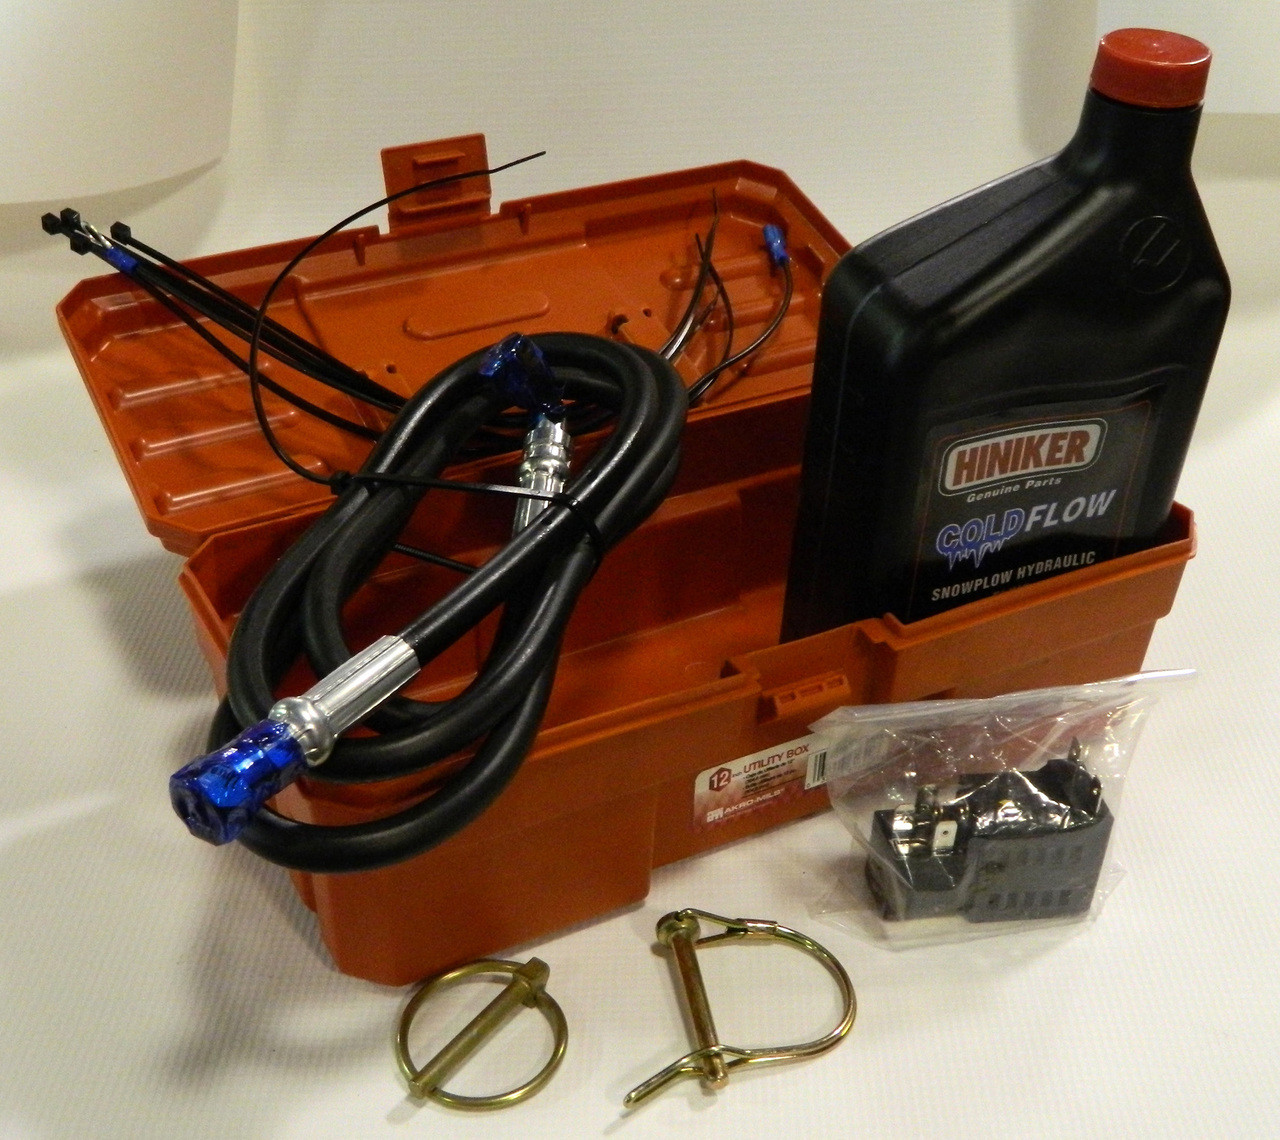 HN25011819 --- Hiniker Snowplow Emergency Parts Kit